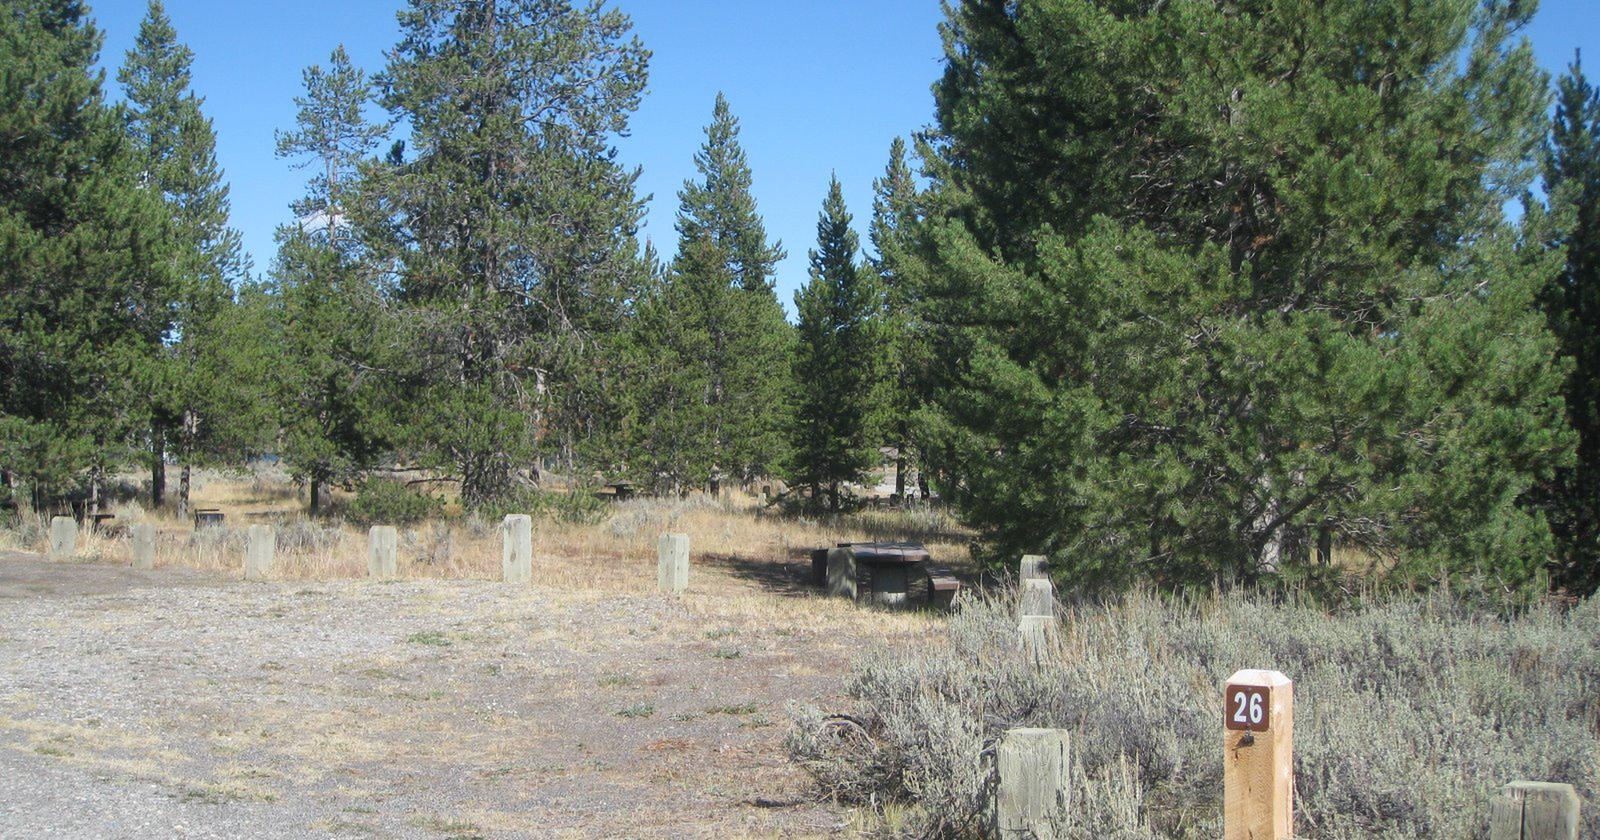 Site 26, campsite surrounded by pine trees, picnic table & fire ringSite 26